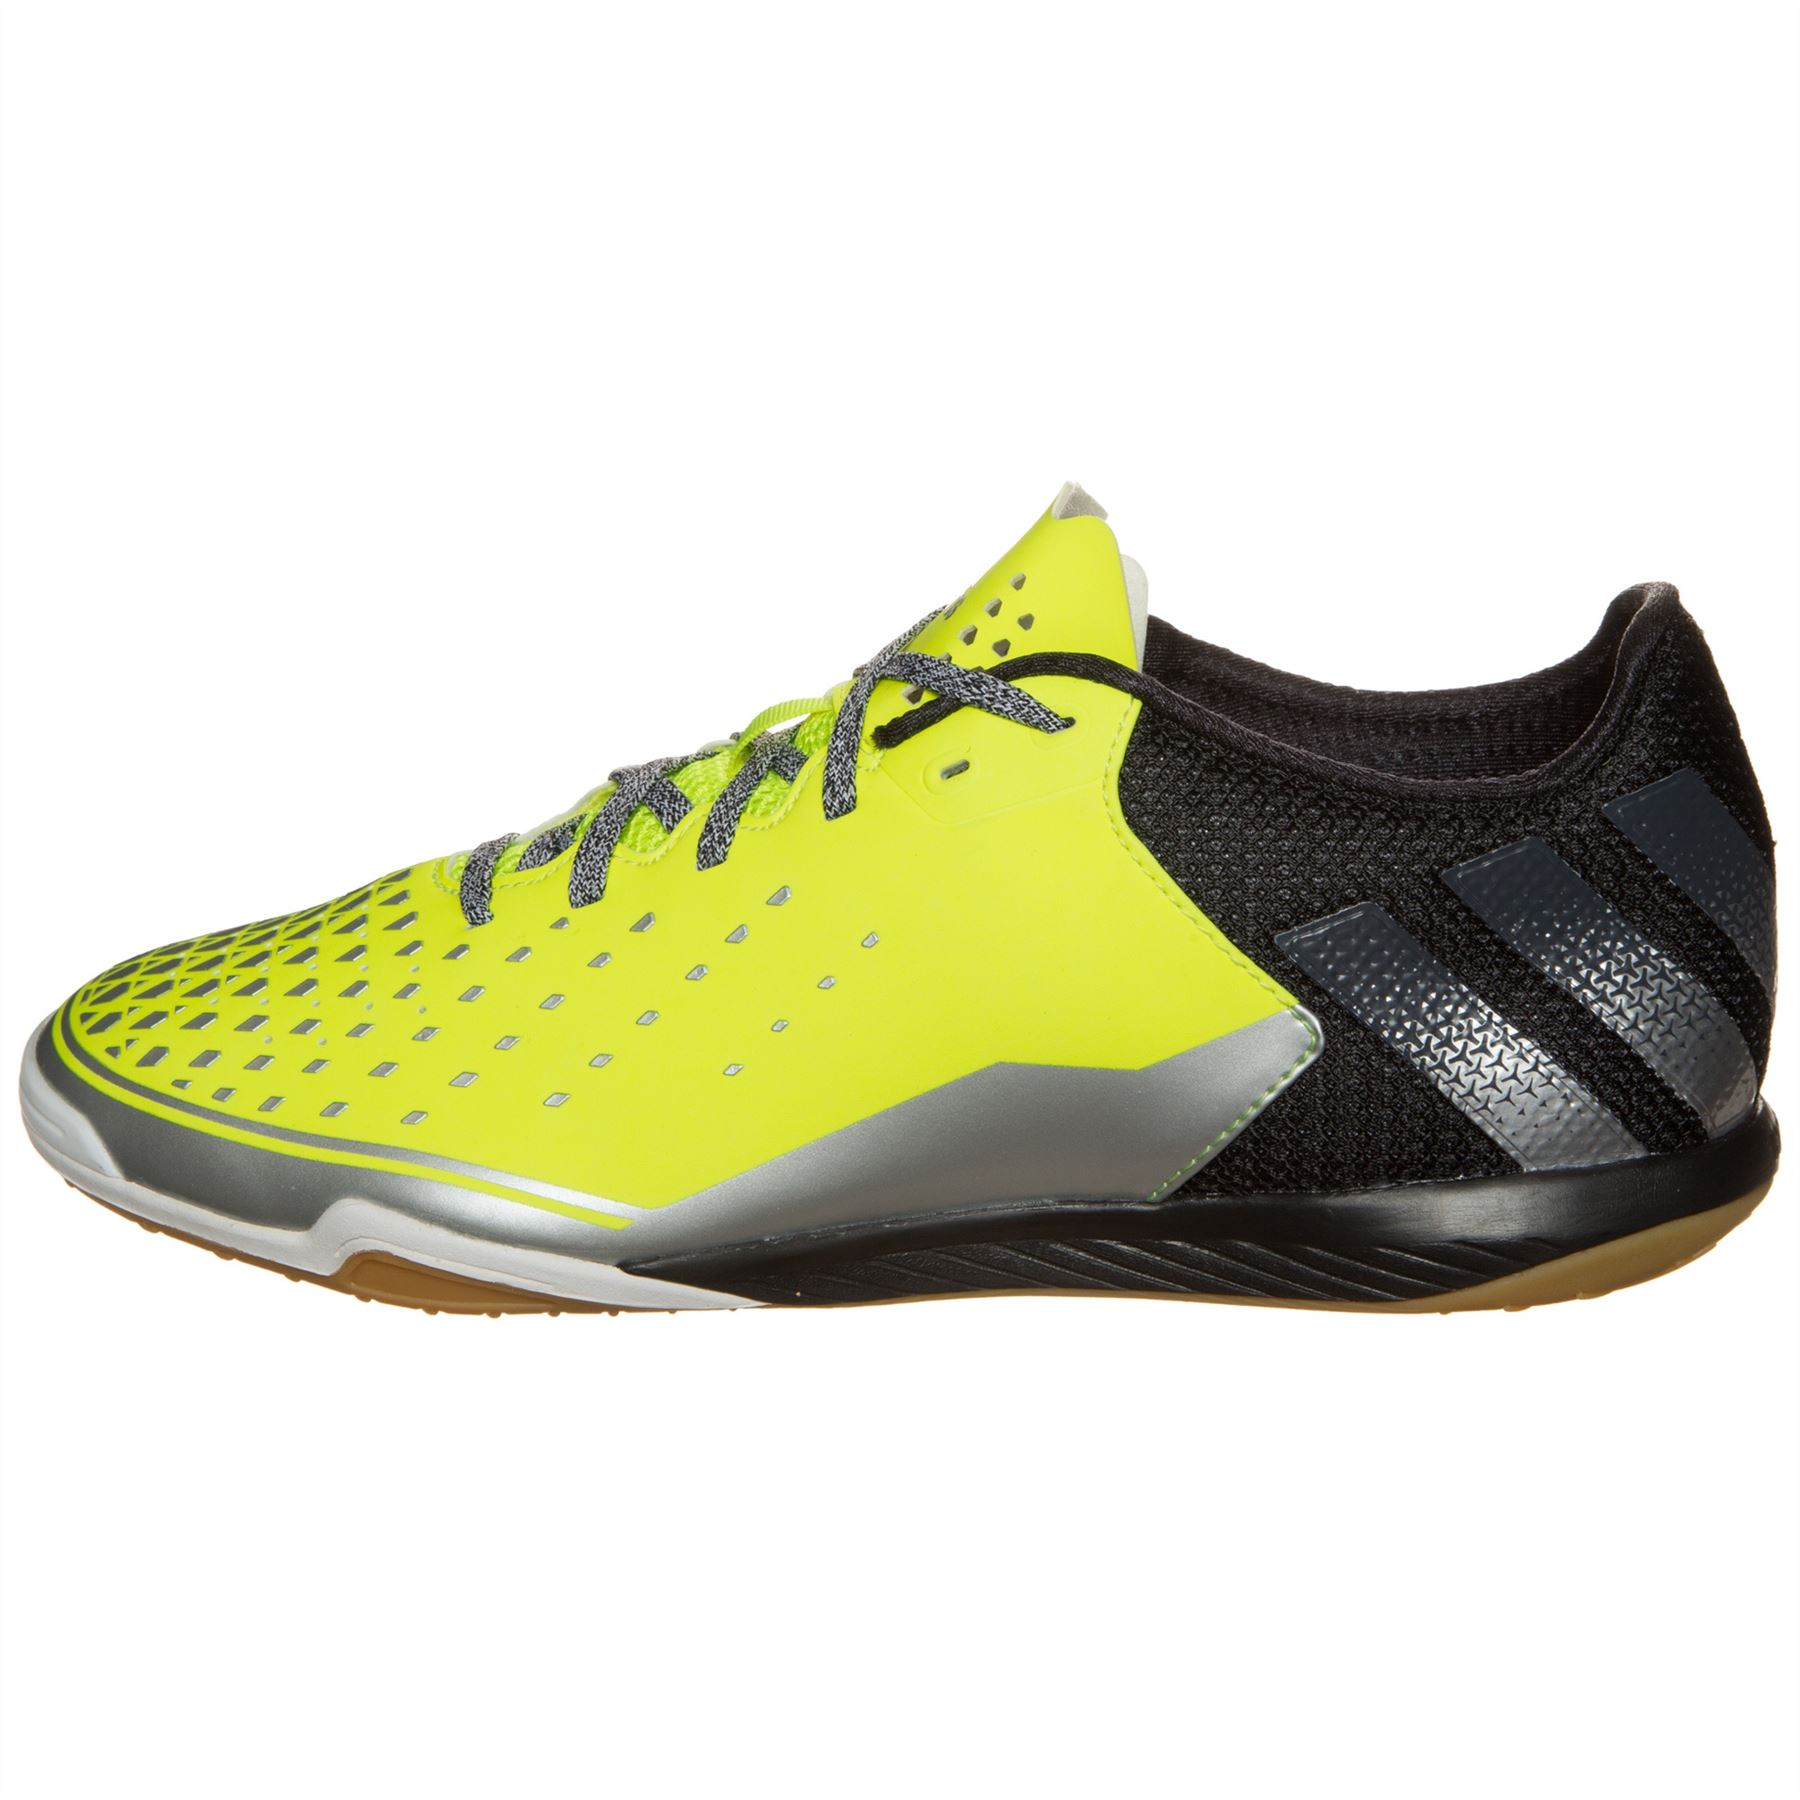 37cd5d0f657 ... adidas Ace 16.2 Court Indoor Football Shoes Mens Yel Blk Futsal Soccer  Trainers